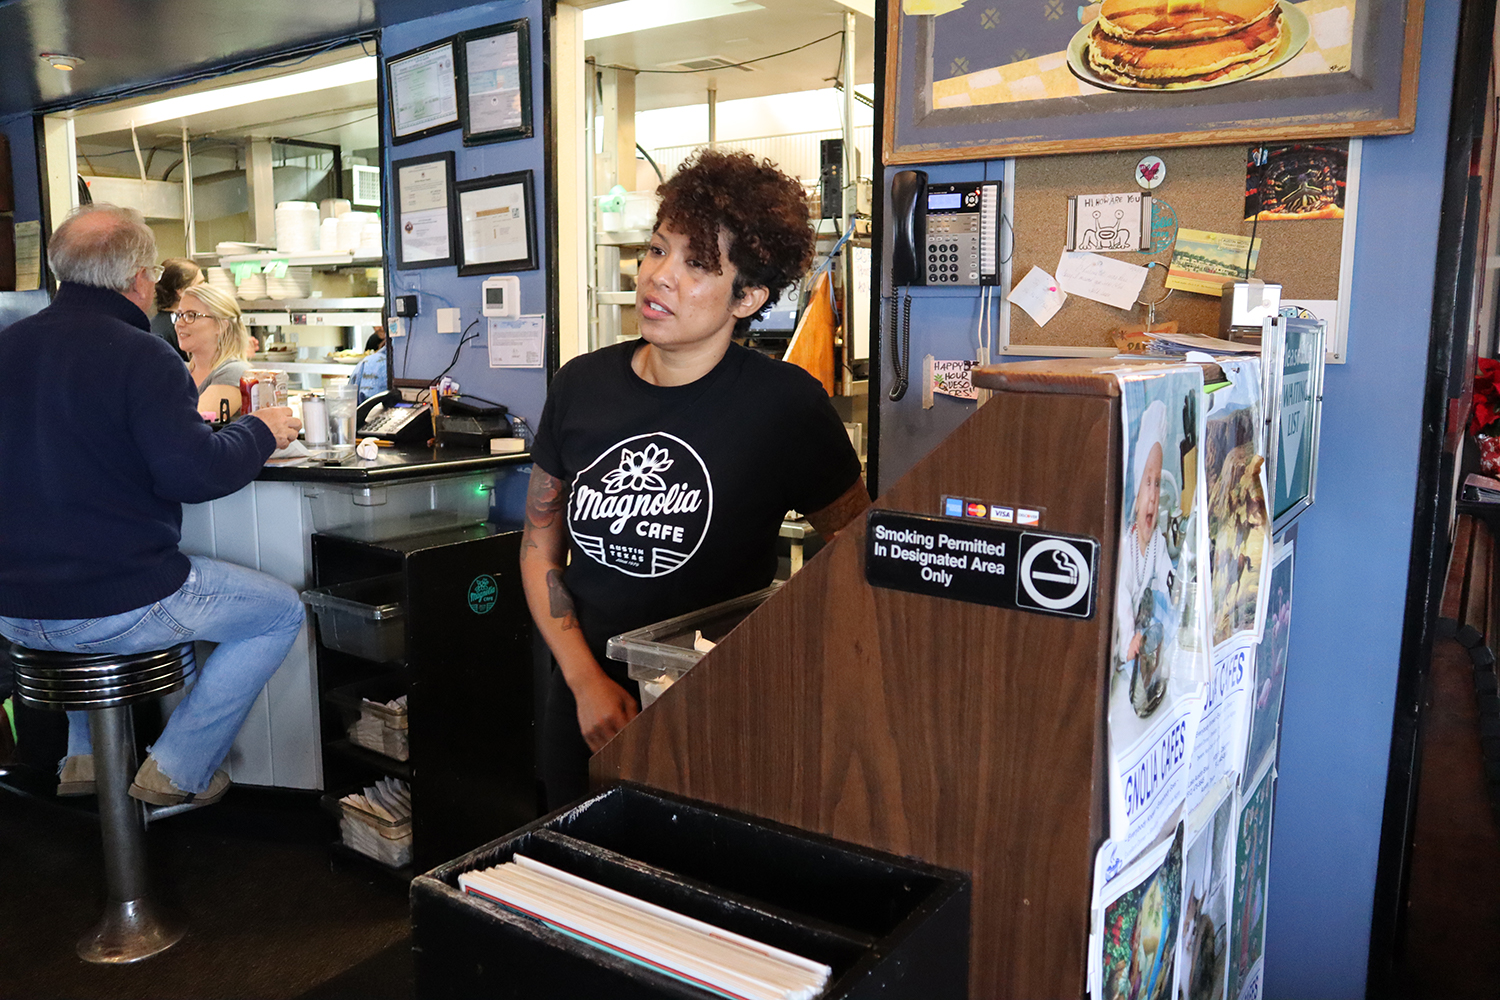 Ebone Zamarron works a hosting shift at Magnolia's Cafe to earn extra cash to help provide for her two daughters. She also works another job for some extra spending cash.